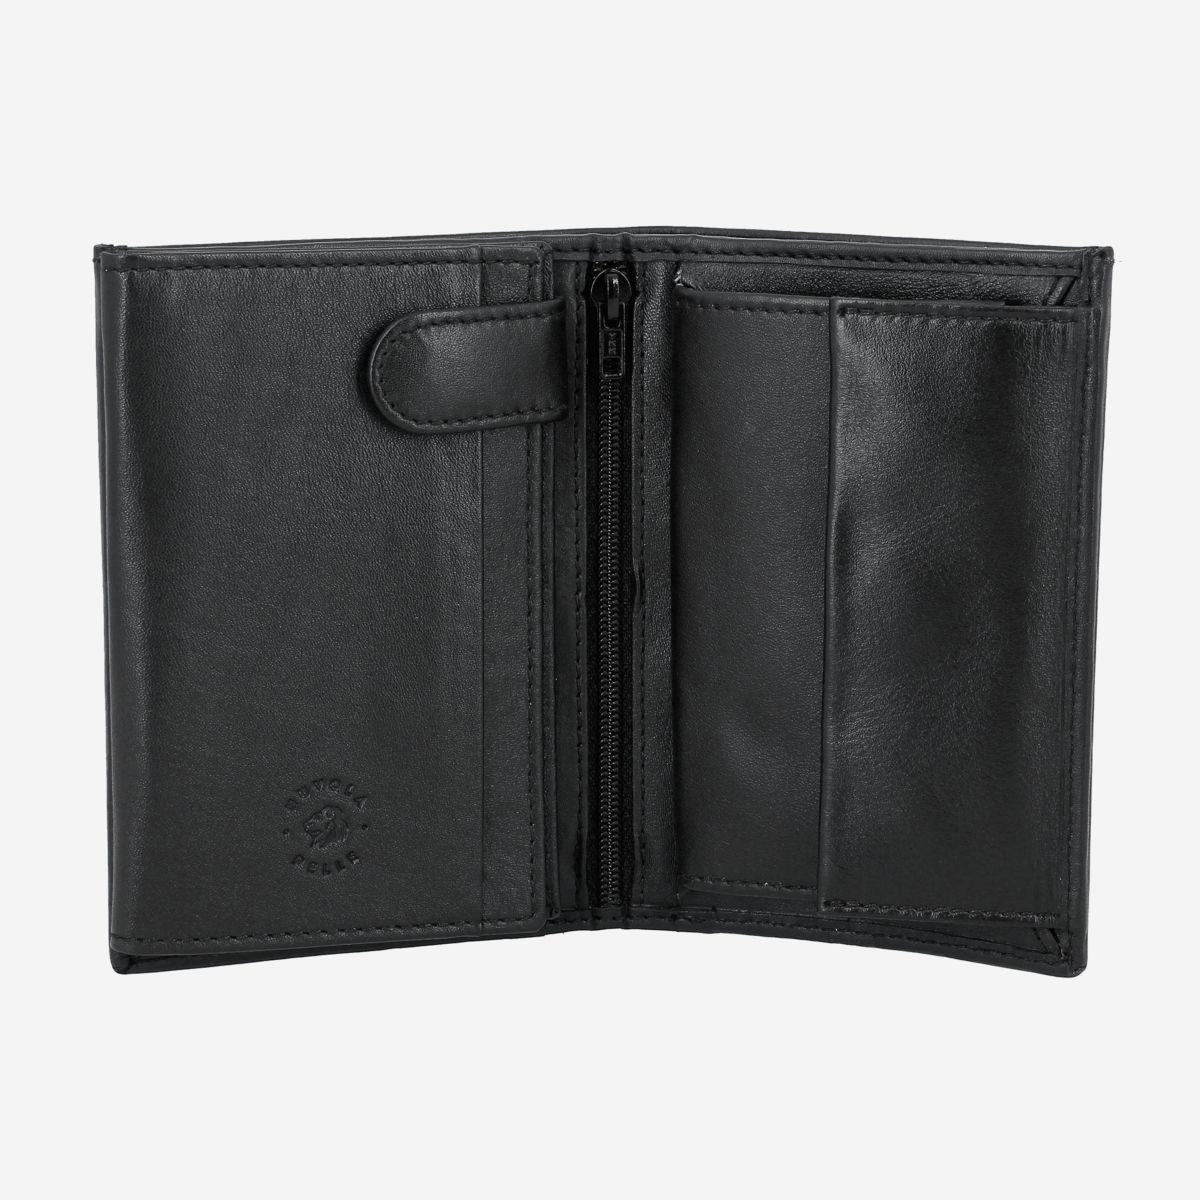 NUVOLA PELLE Mens Vertical Wallet With Coin Pocket - Black